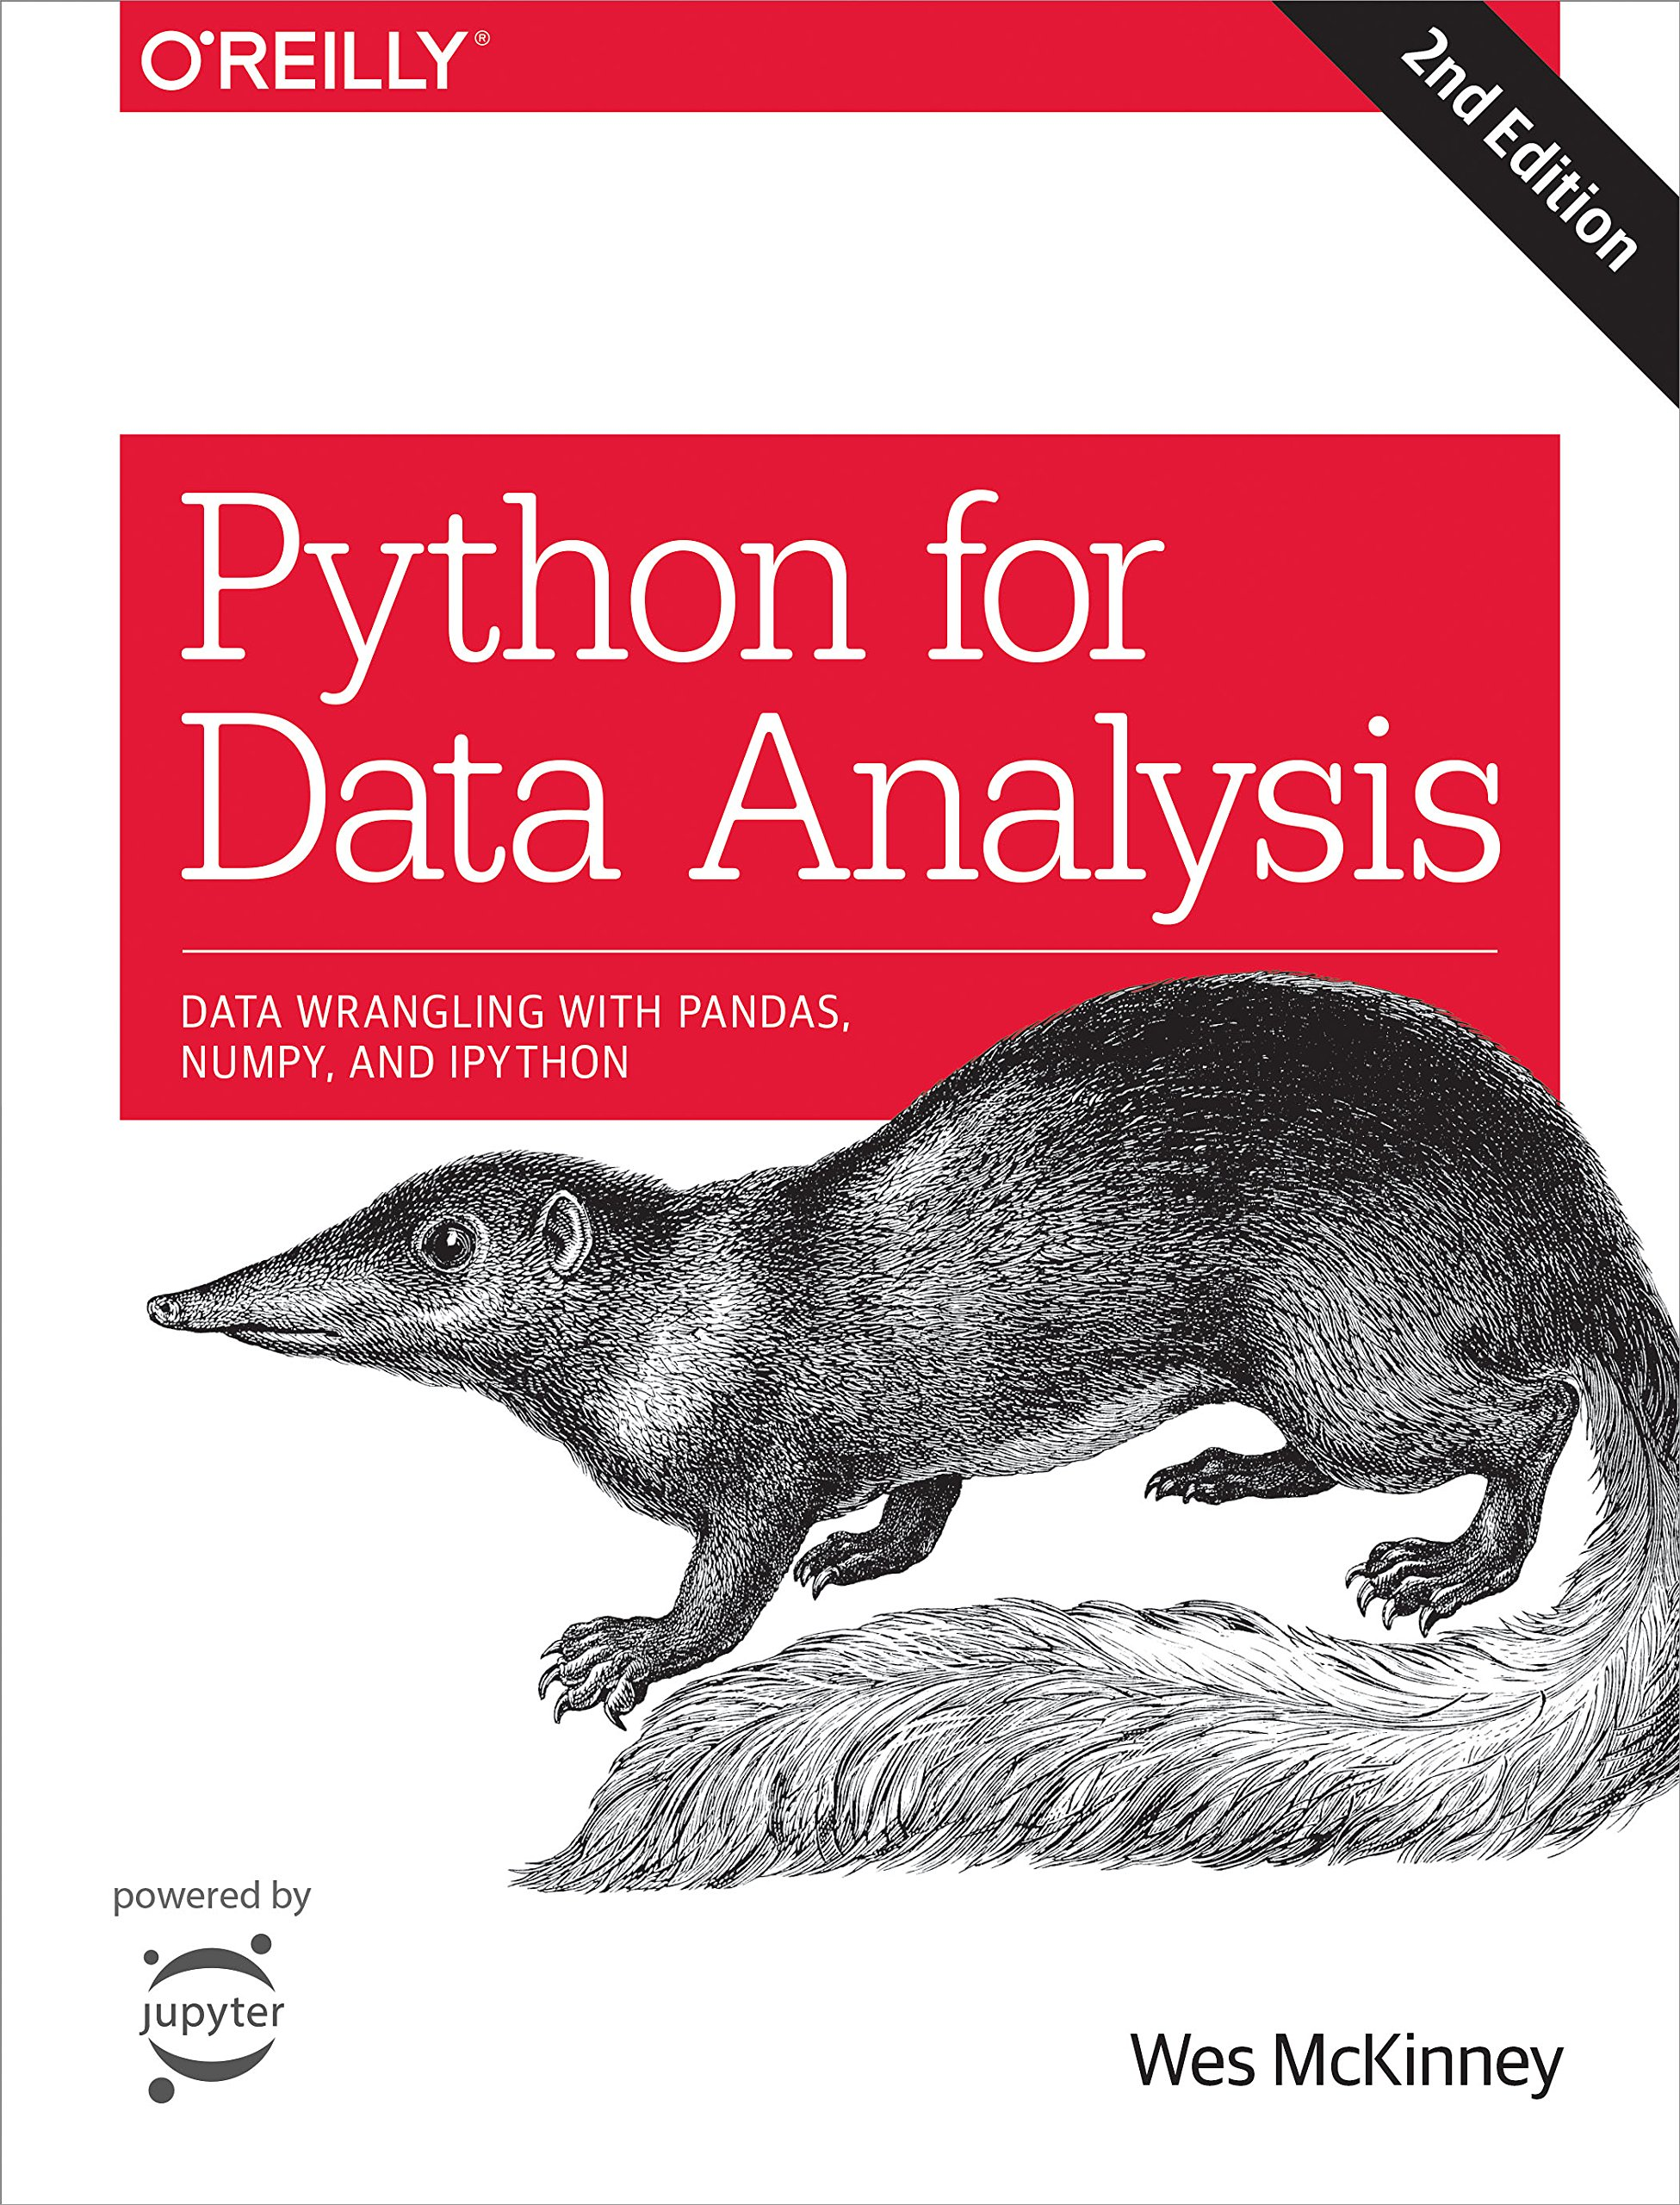 Python for Data Analysis: Data Wrangling with Pandas, NumPy, and IPython by O'Reilly Media